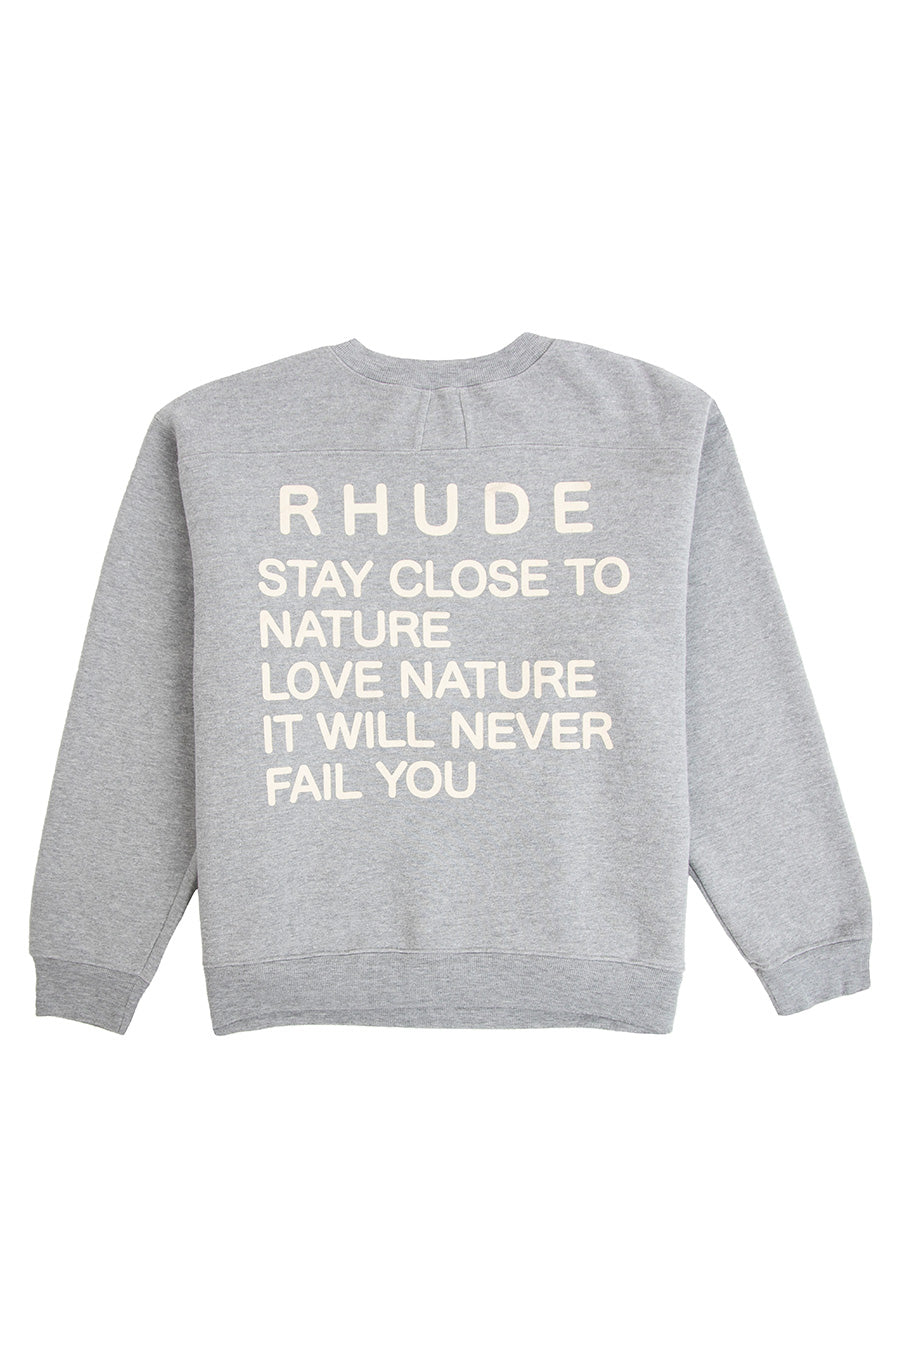 Rhude - Grey Trekking Crewneck Sweatshirt | 1032 SPACE